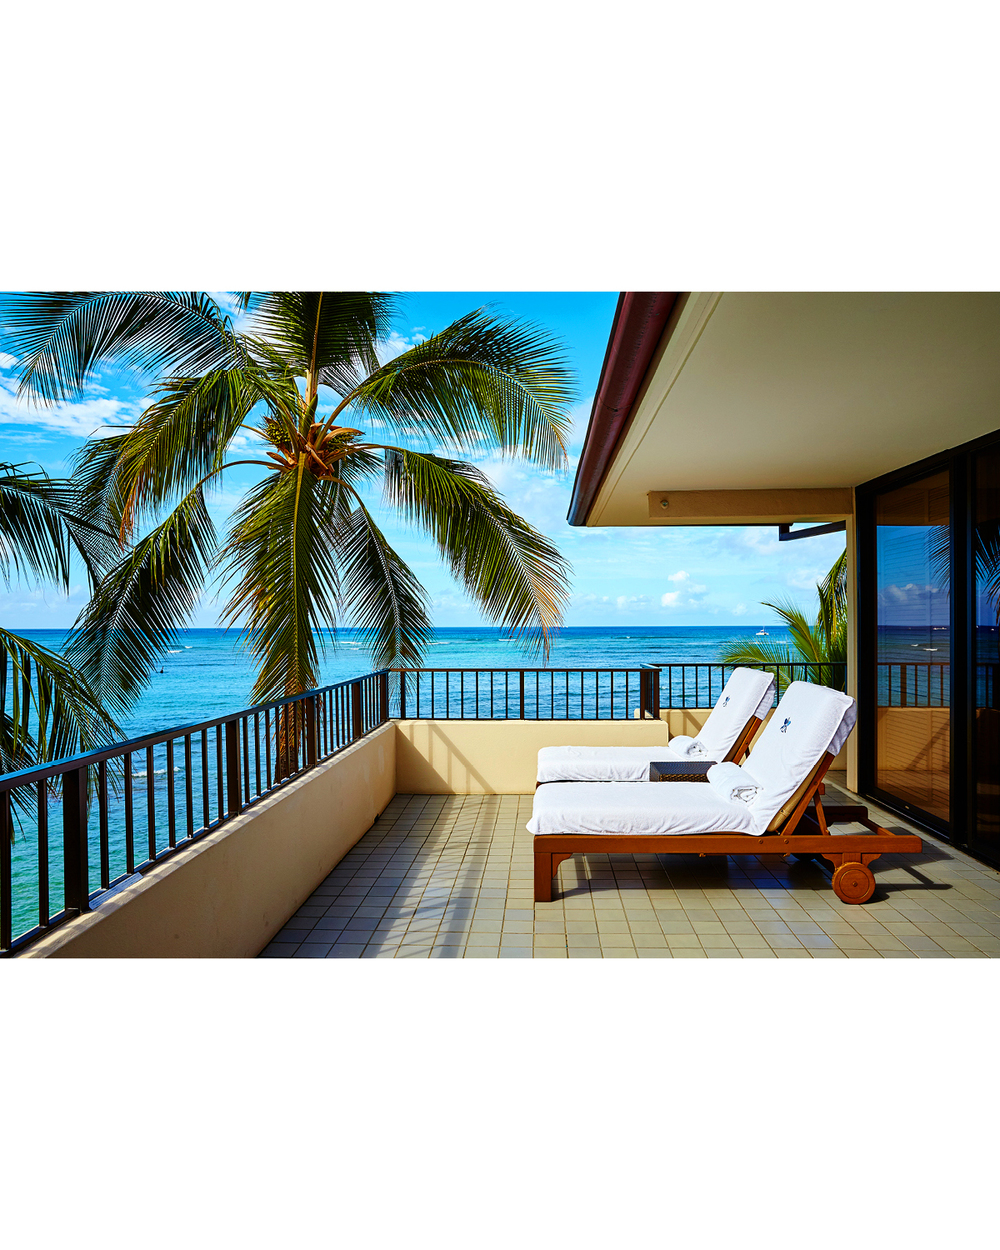 THE ROYAL SUITE BALCONY AT HALEKULANI